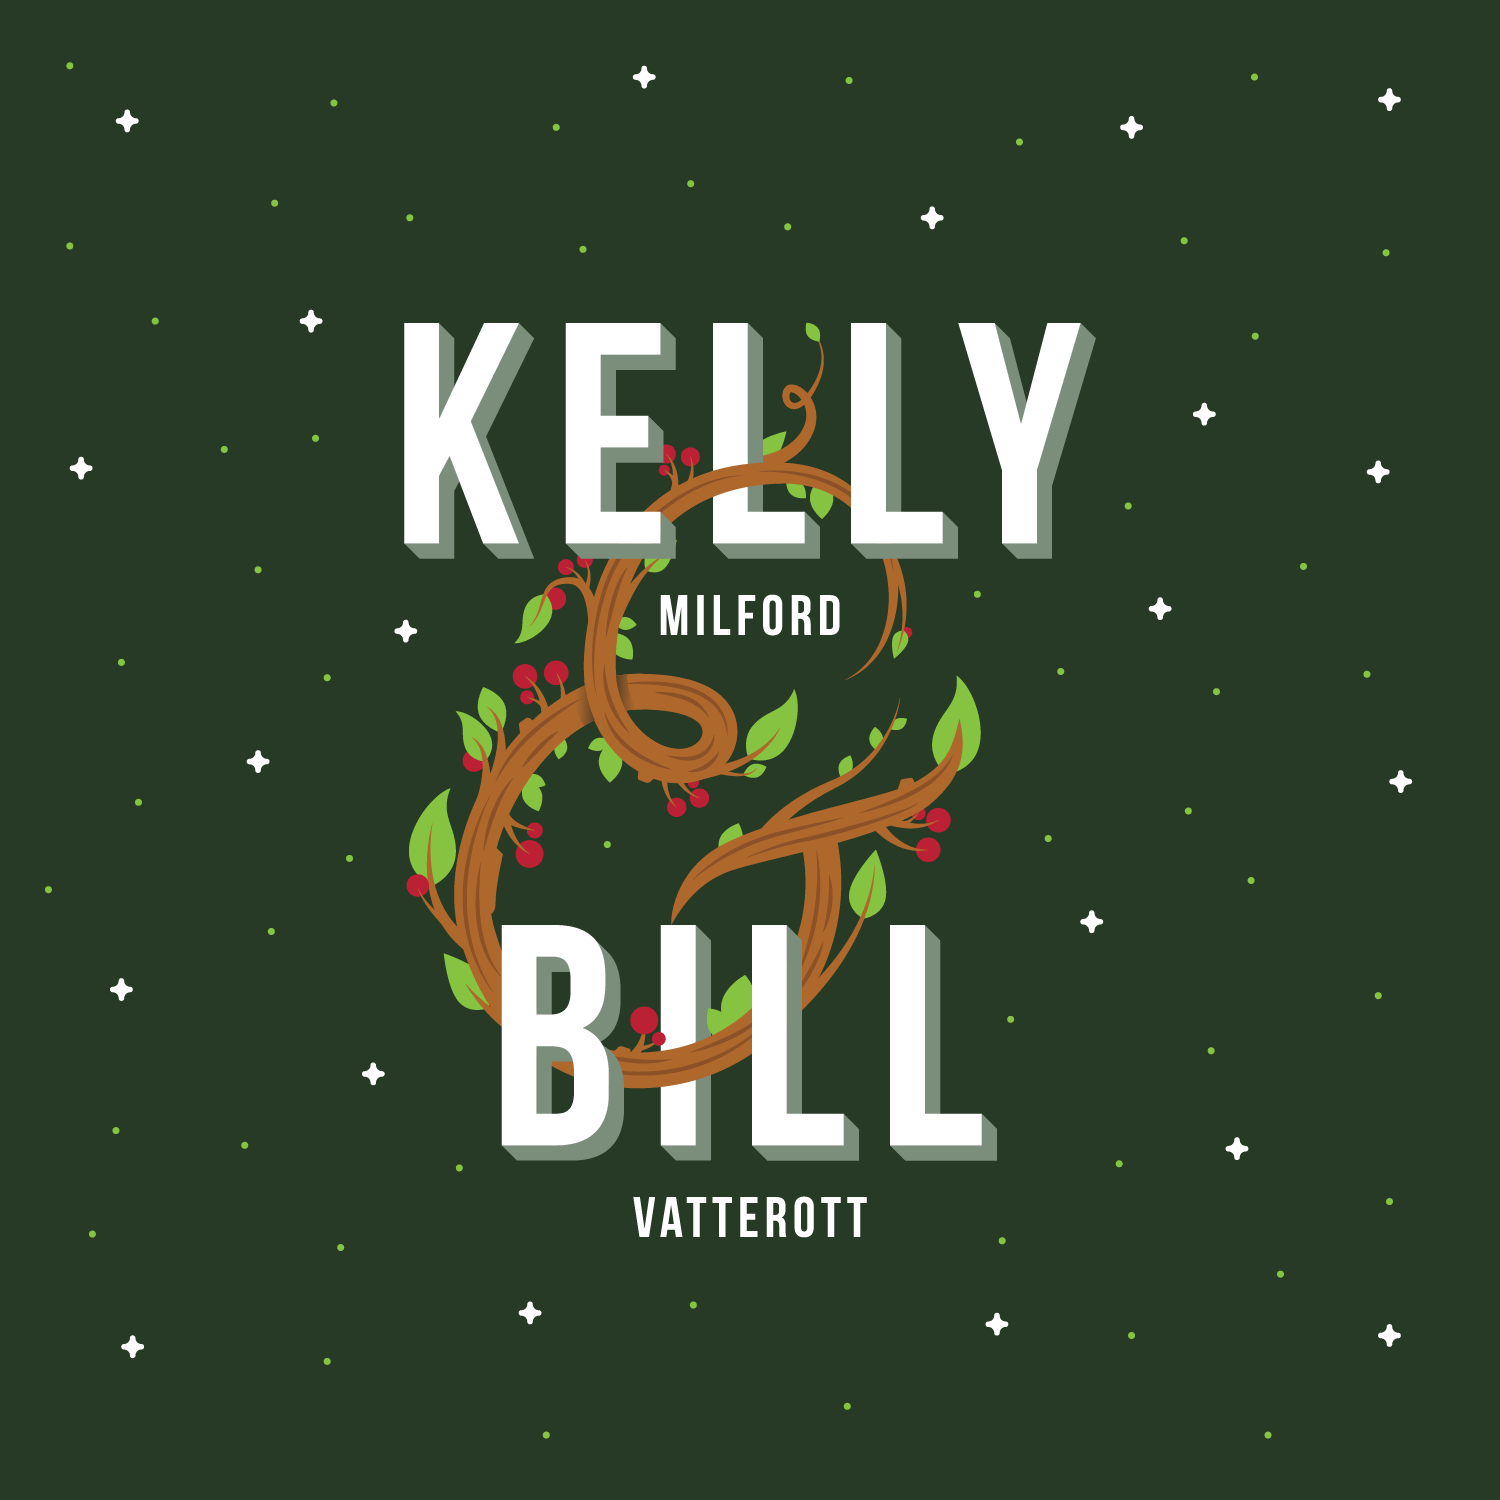 Kelly-+-Bill-Wedding-Save-the-Date-details-Headline.png